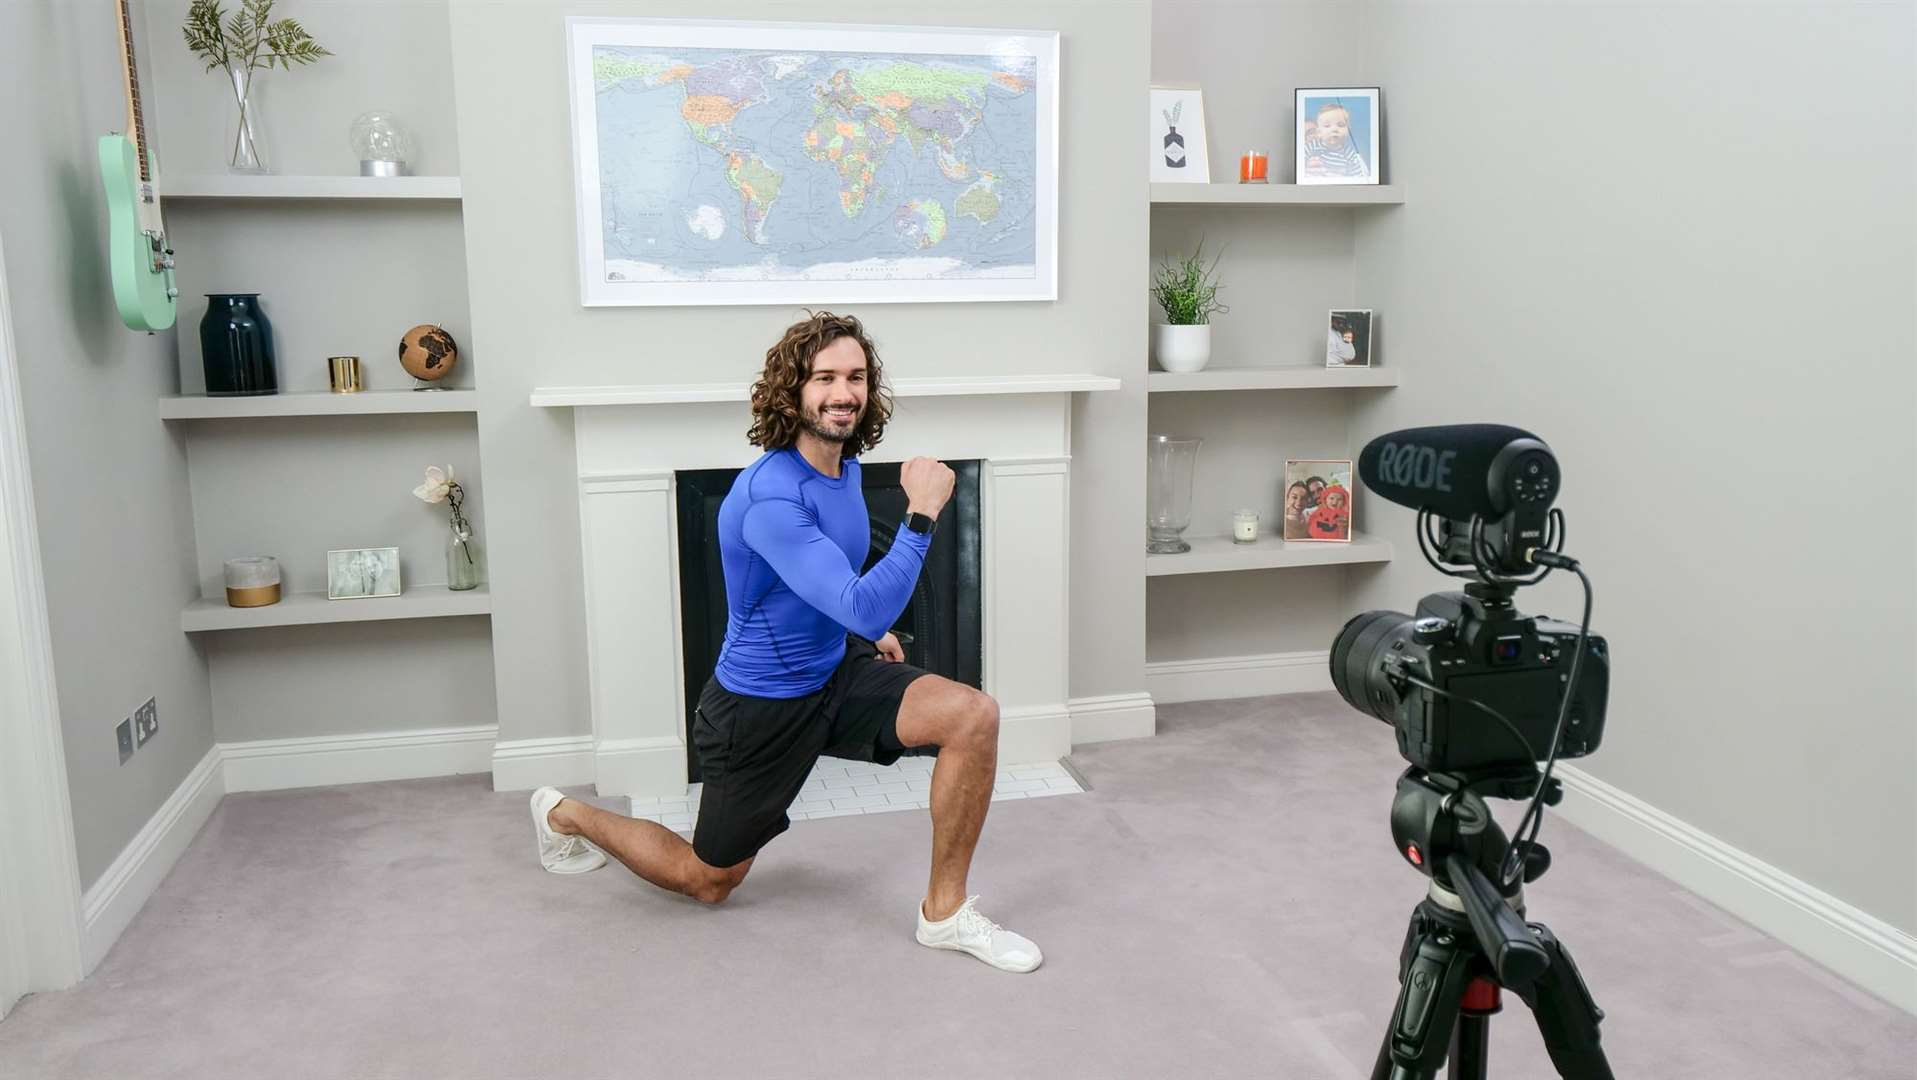 Joe Wicks has been filming classes from home for 13 weeks to help children in lockdown stay active